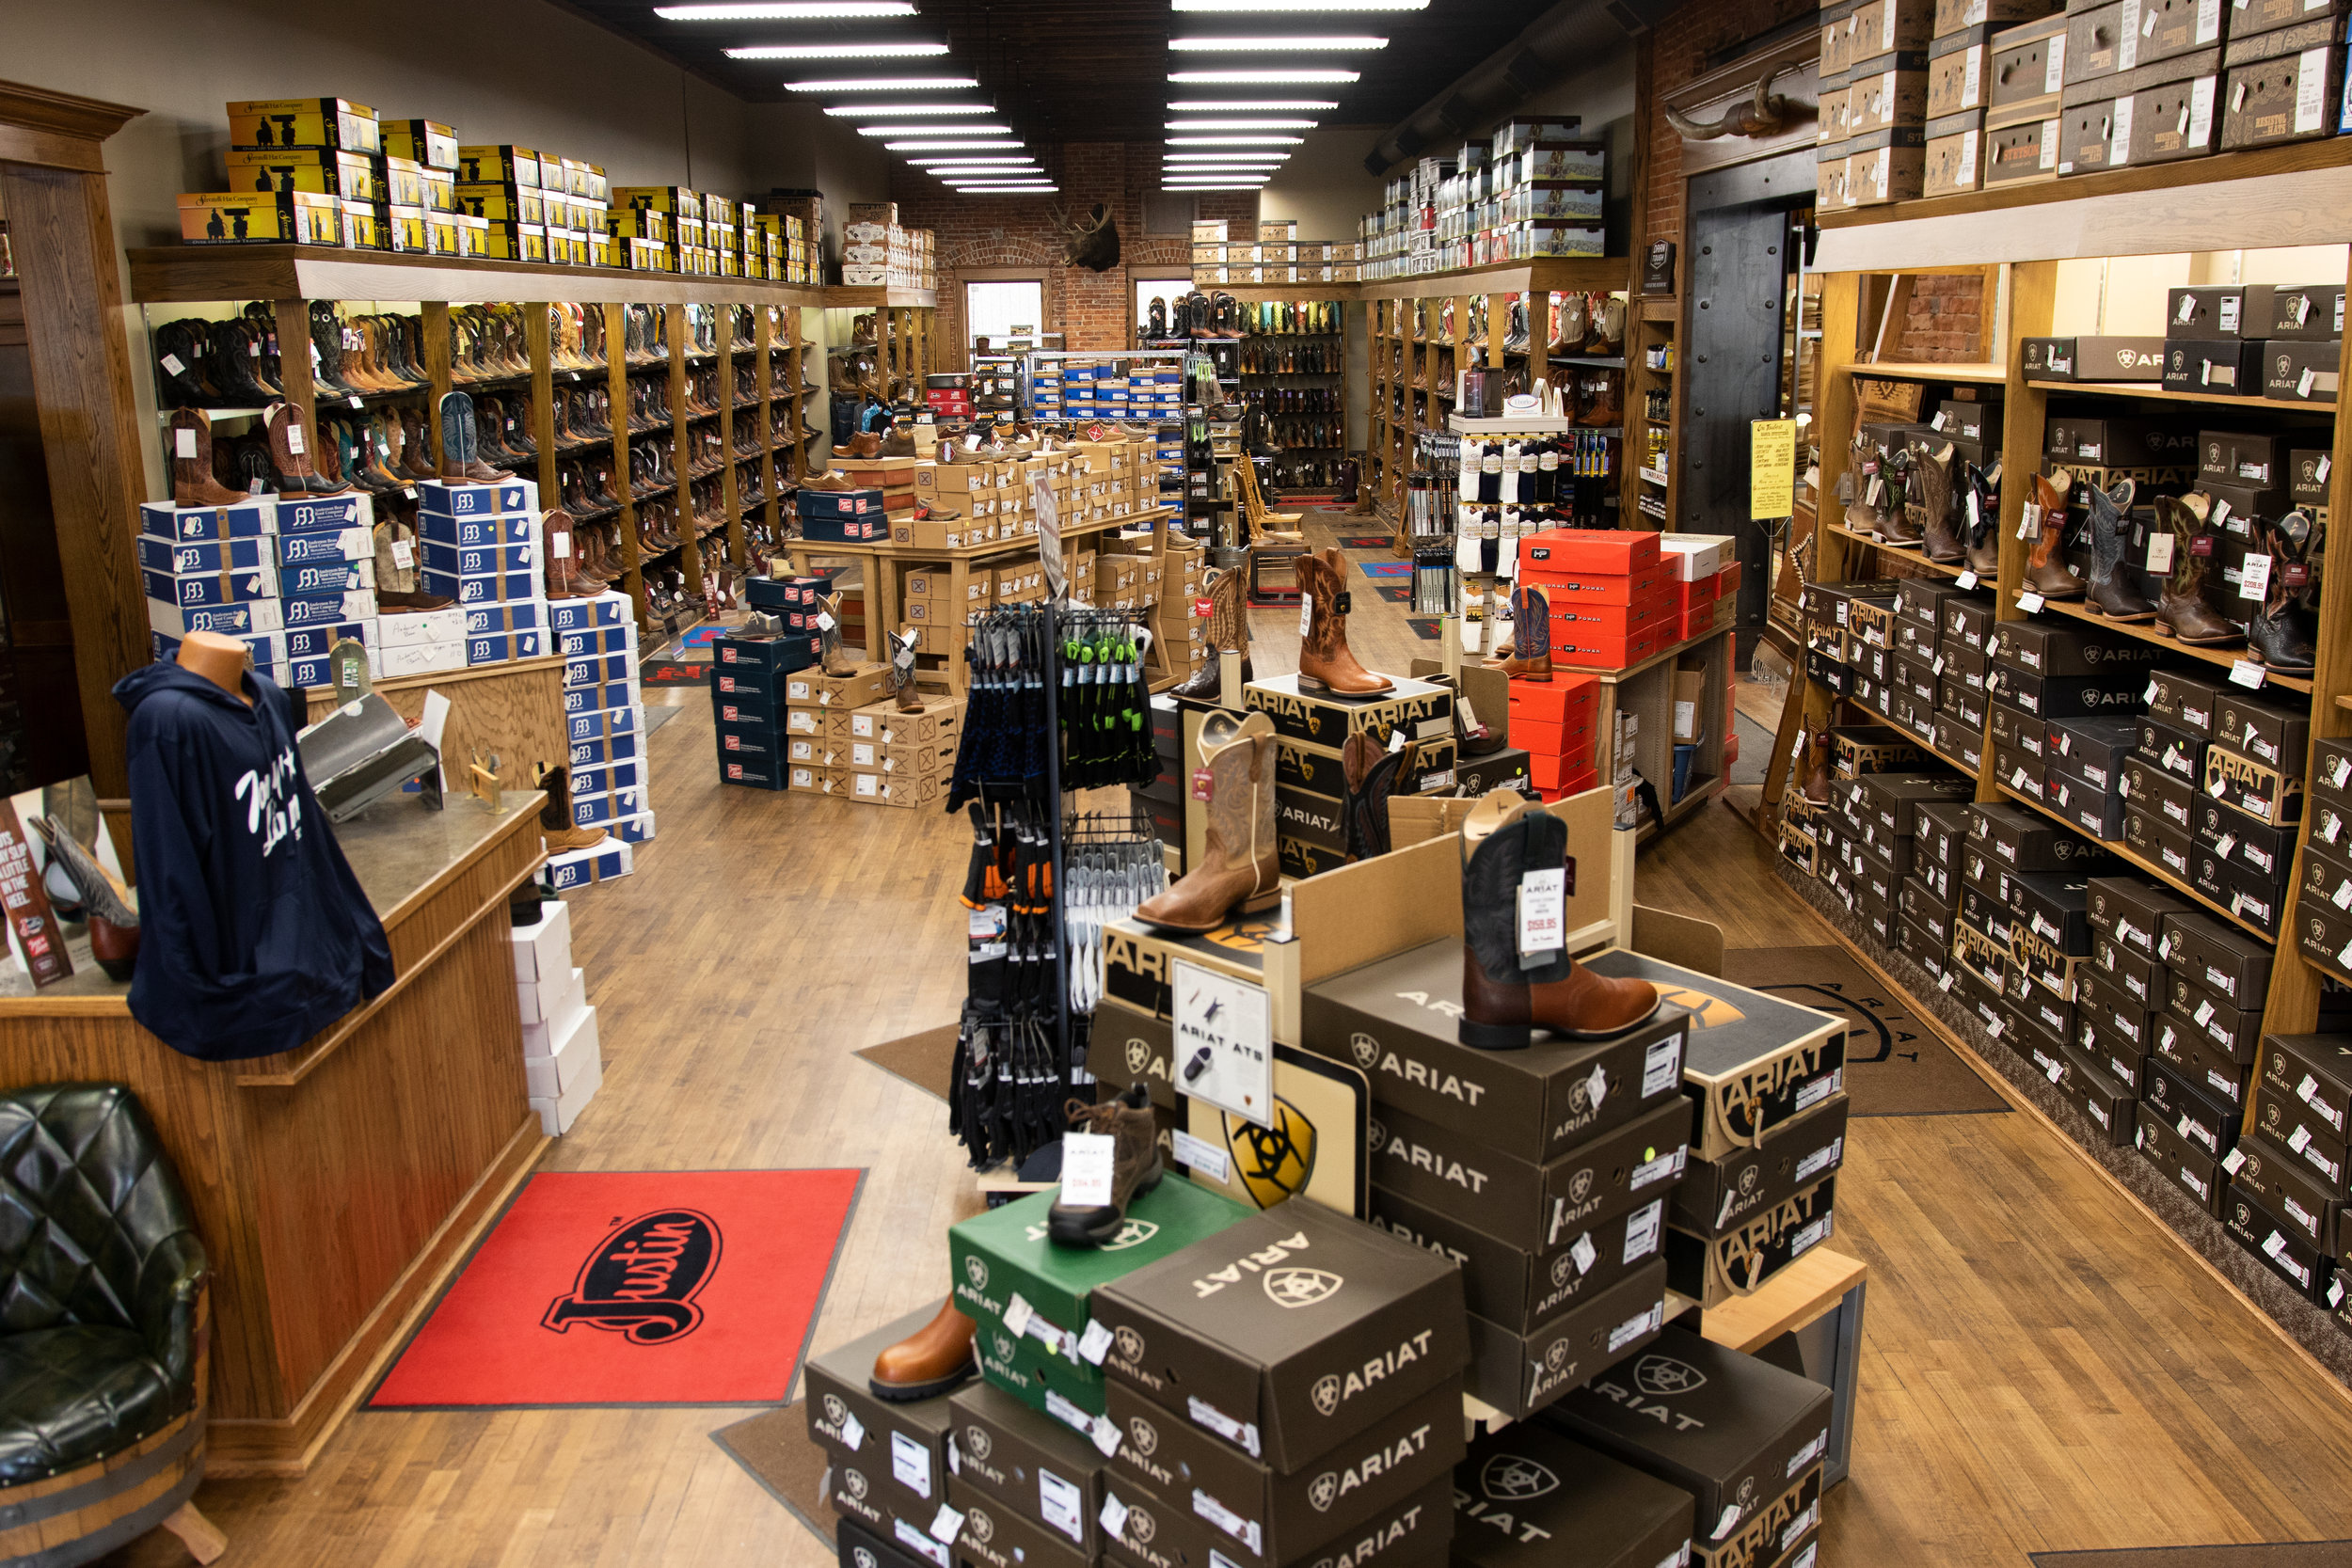 """The Boot Room"" - Boots for riding or walking, dress or work, we've got something in stock for you. We carry the brands you know and trust, even in hard-to-find sizes. Come let us find you the perfect fit."